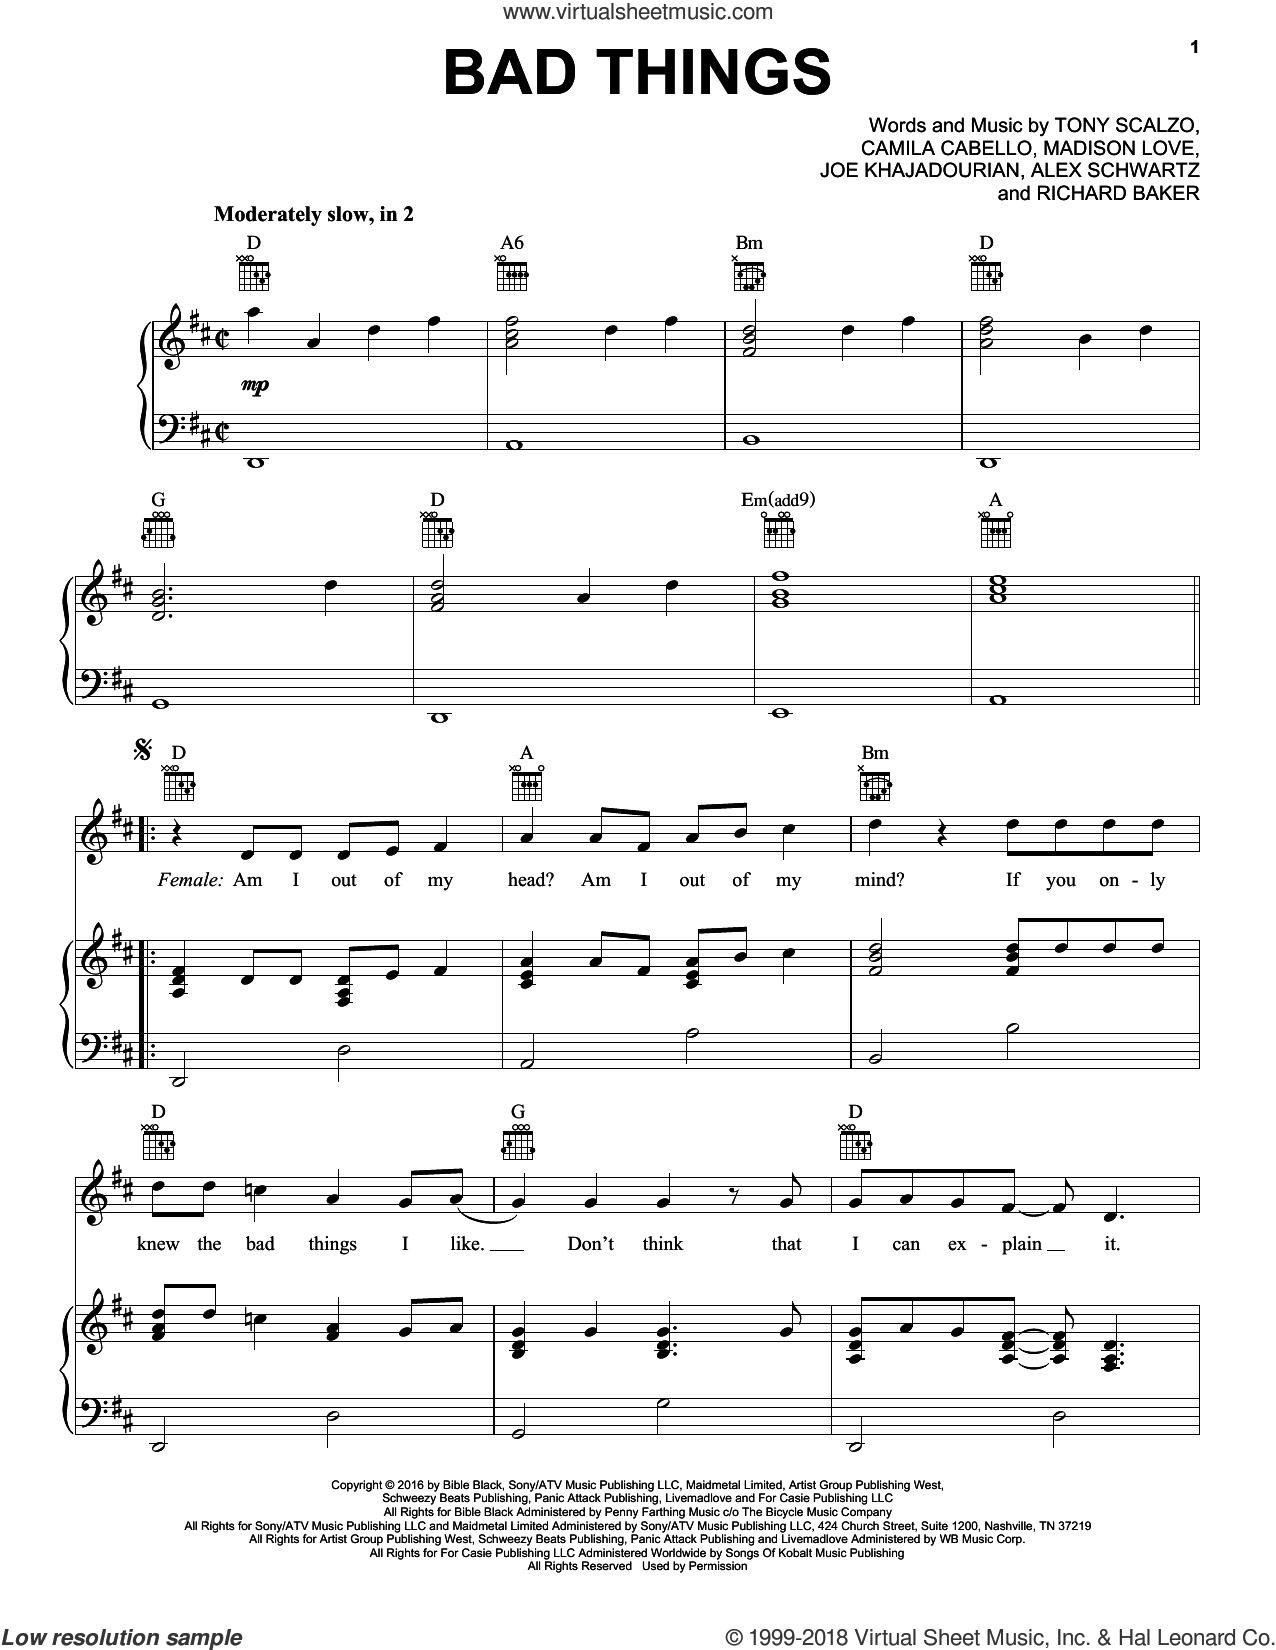 Bad Things sheet music for voice, piano or guitar by Machine Gun Kelly and Camila Cabello, Alex Schwartz, Camila Cabello, Colson Baker, Joe Khajadourian, Madison Love and Tony Scalzo, intermediate skill level